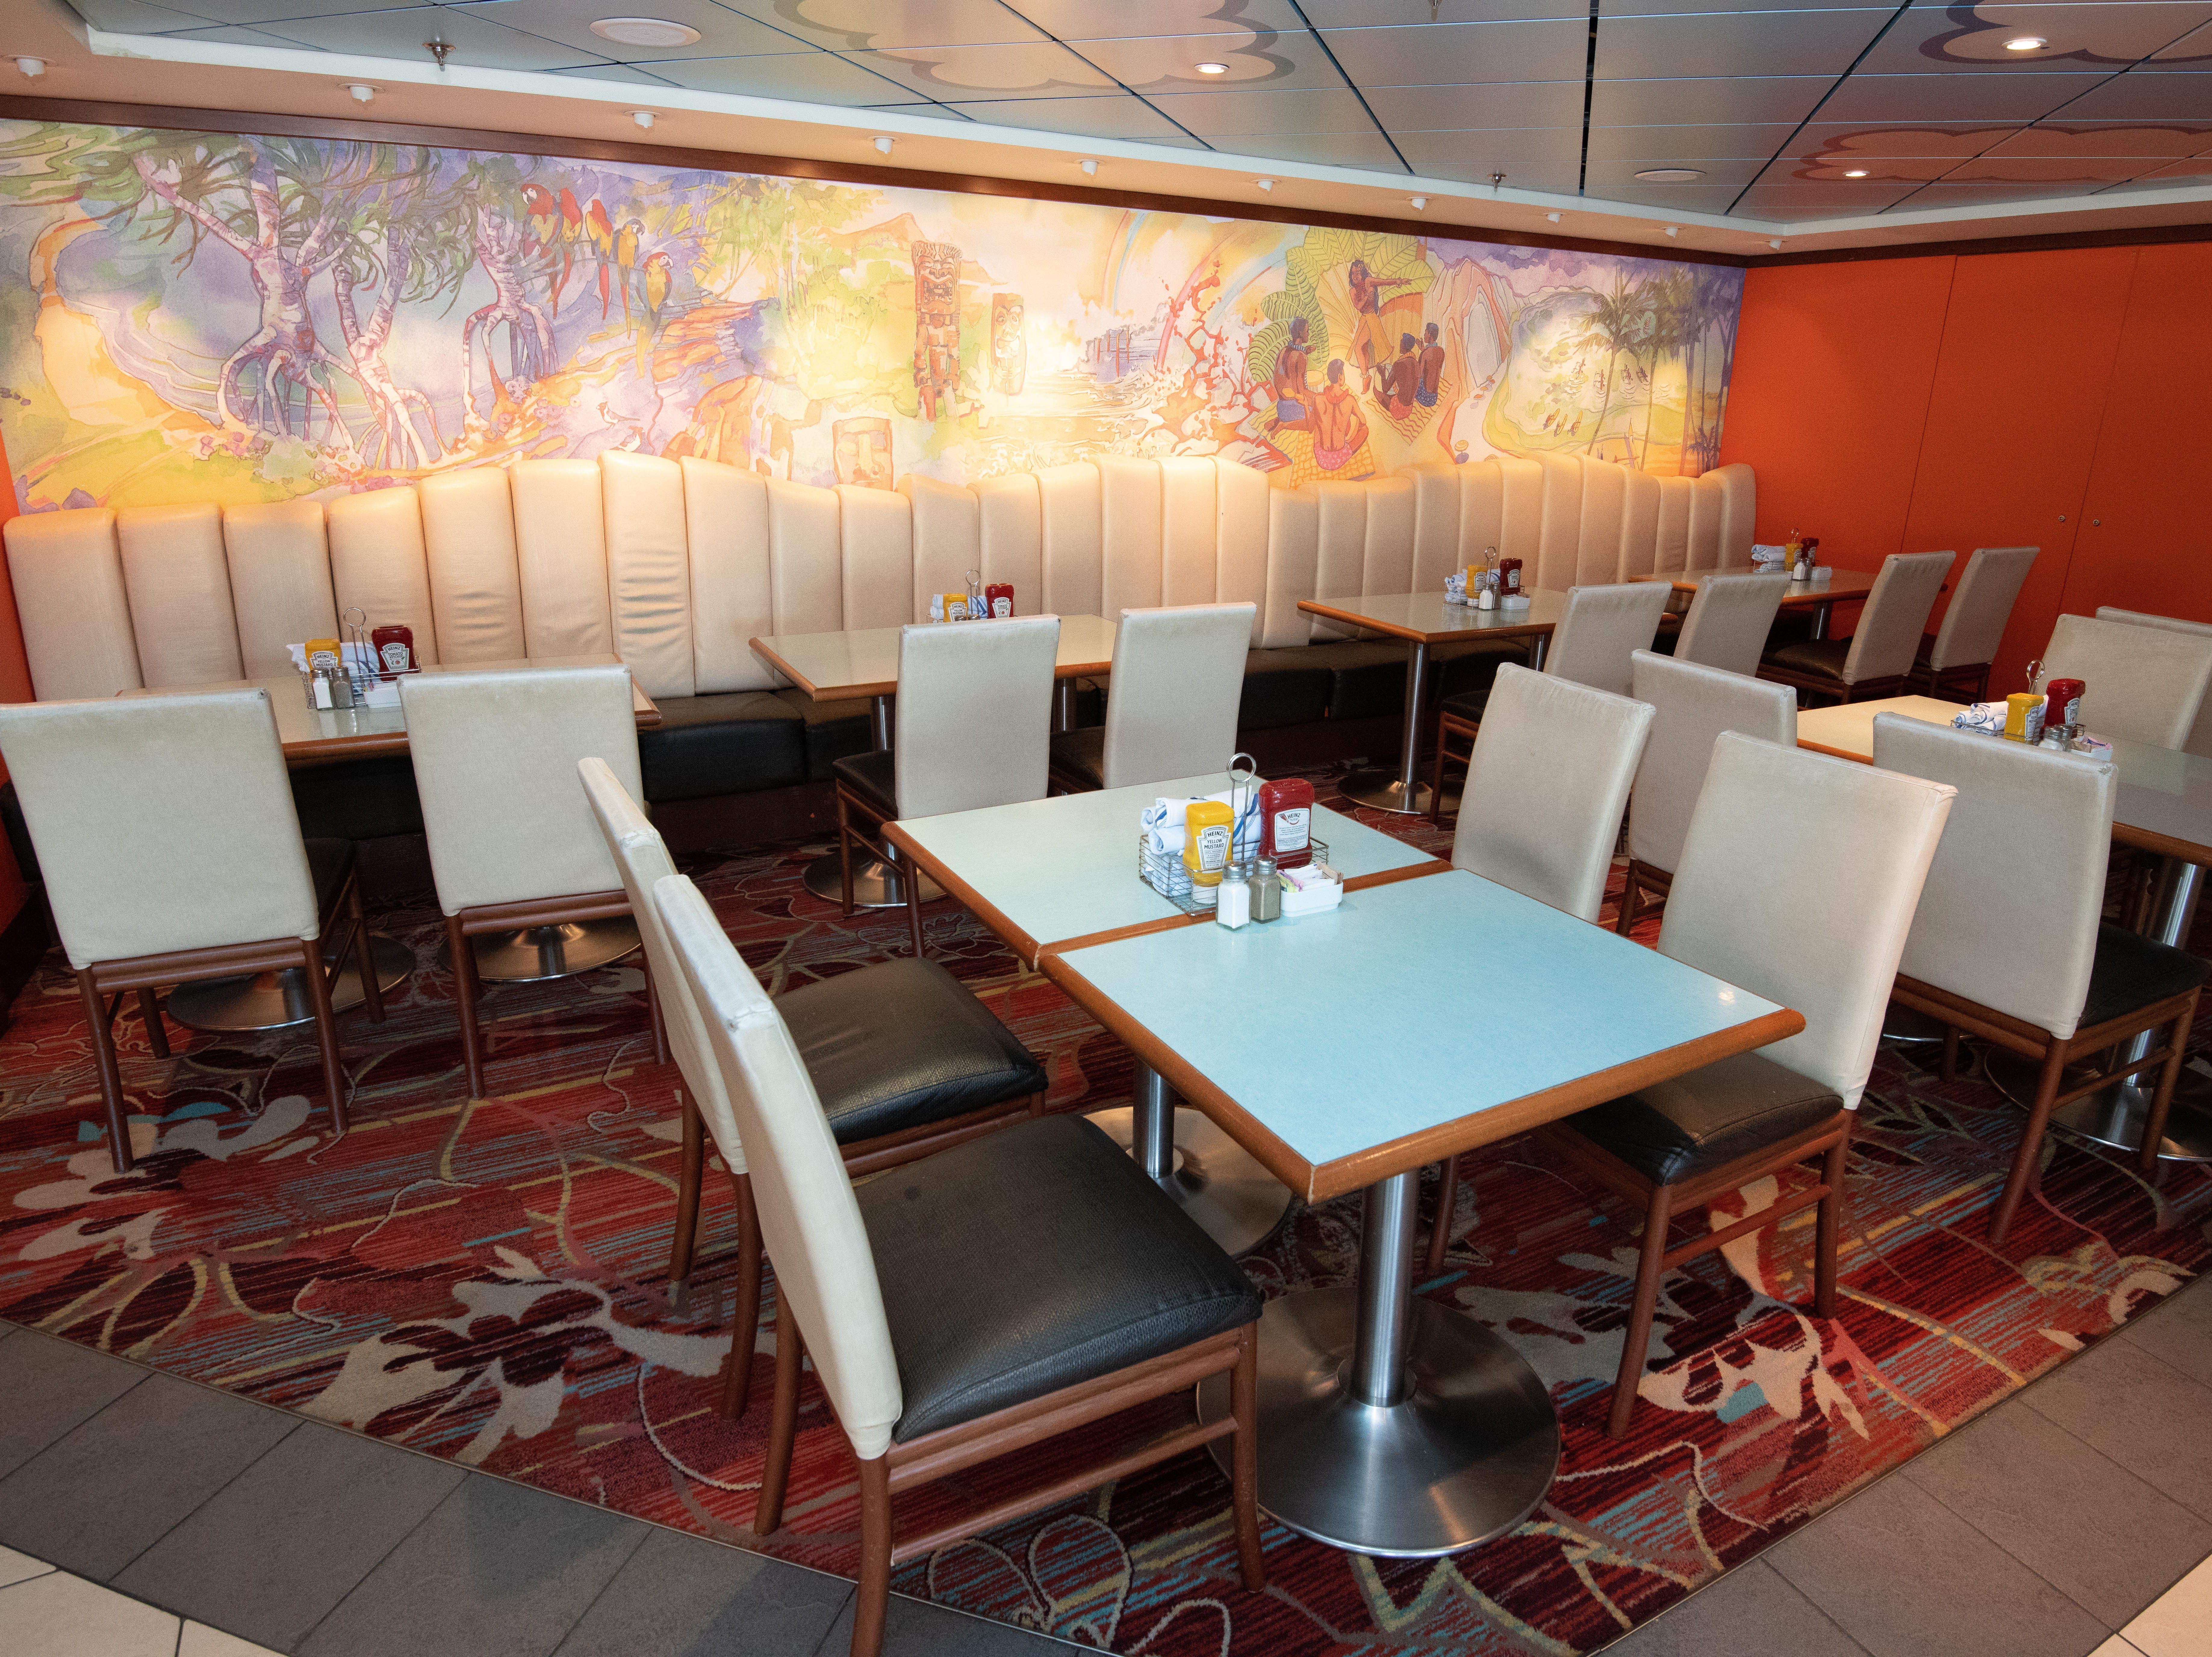 Located just off the main pool area on Deck 11, Aloha Cafe has a Hawaiian theme and is open for breakfast, lunch and dinner.